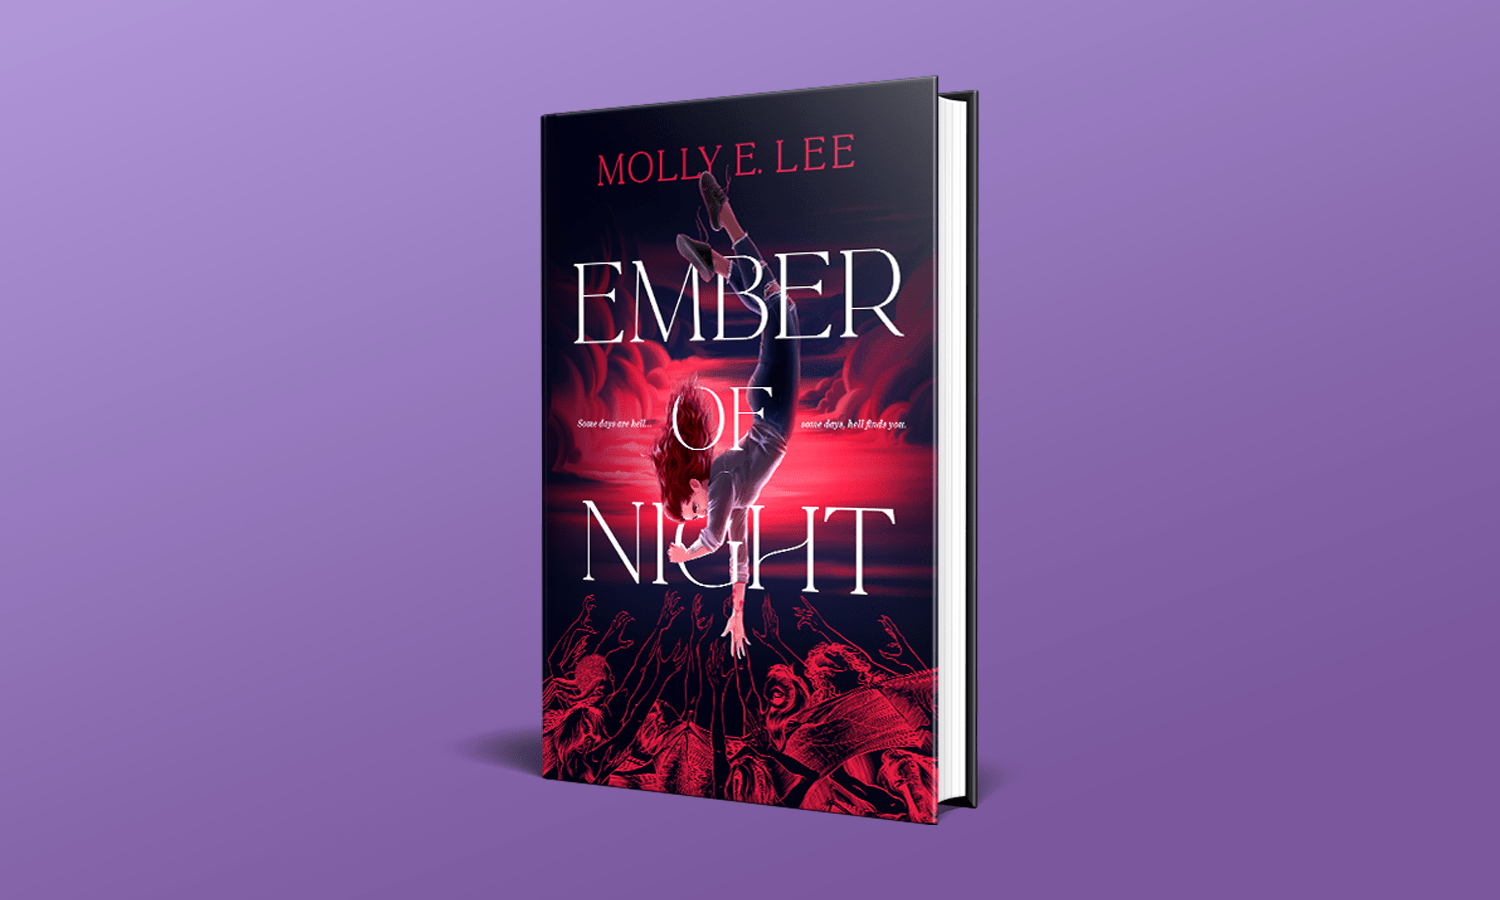 Read an Excerpt From Ember of Night